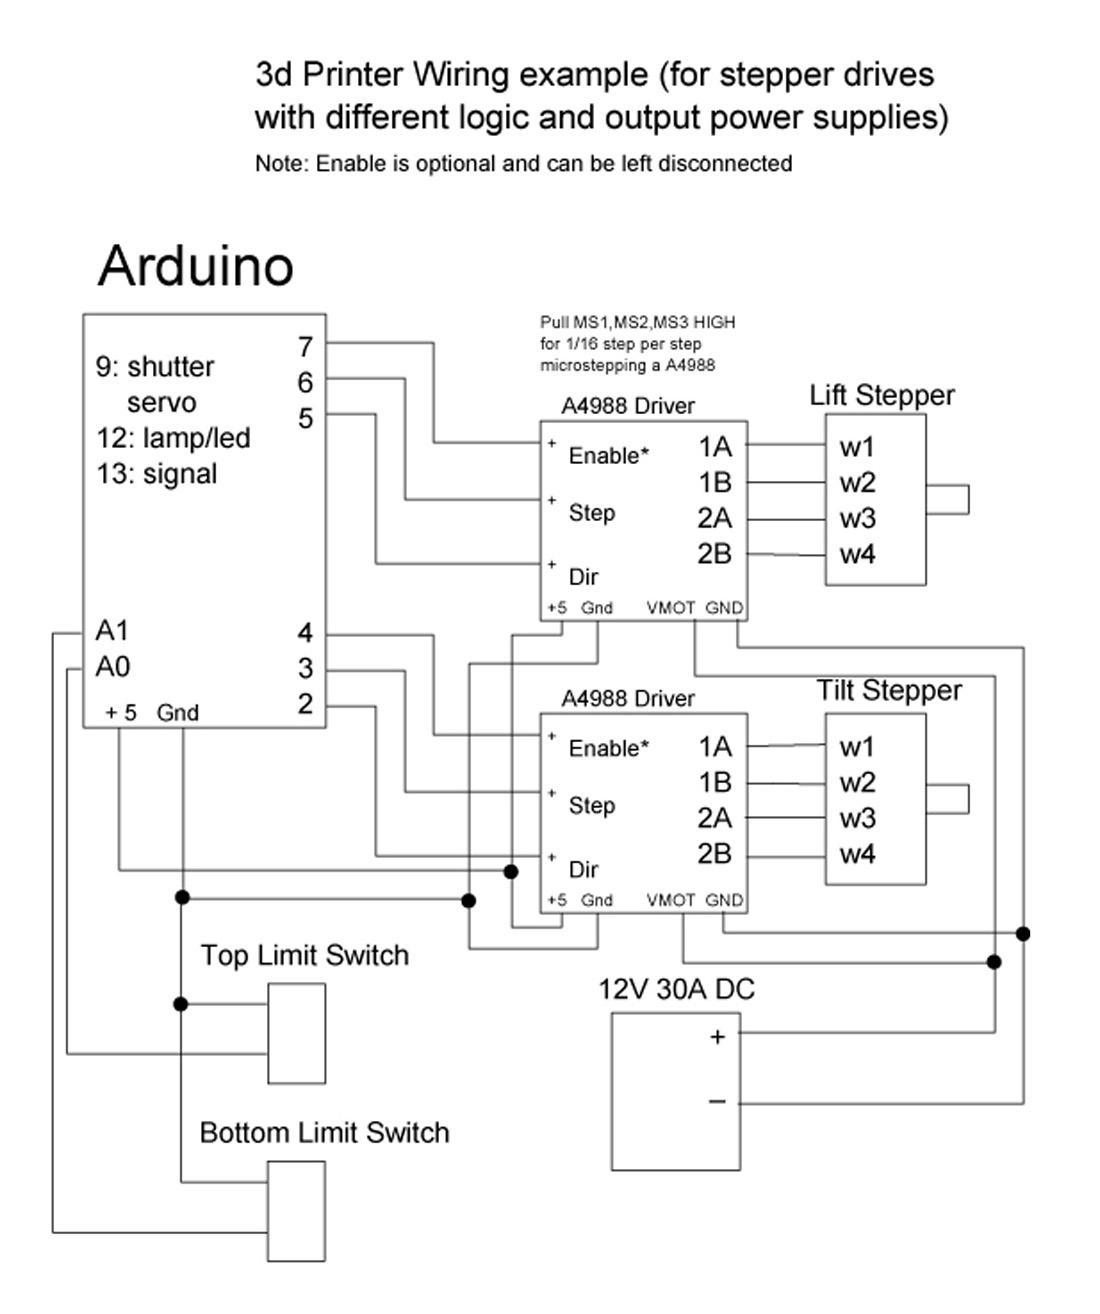 hight resolution of wiring diagram stepper drive with different logic and output power supplies